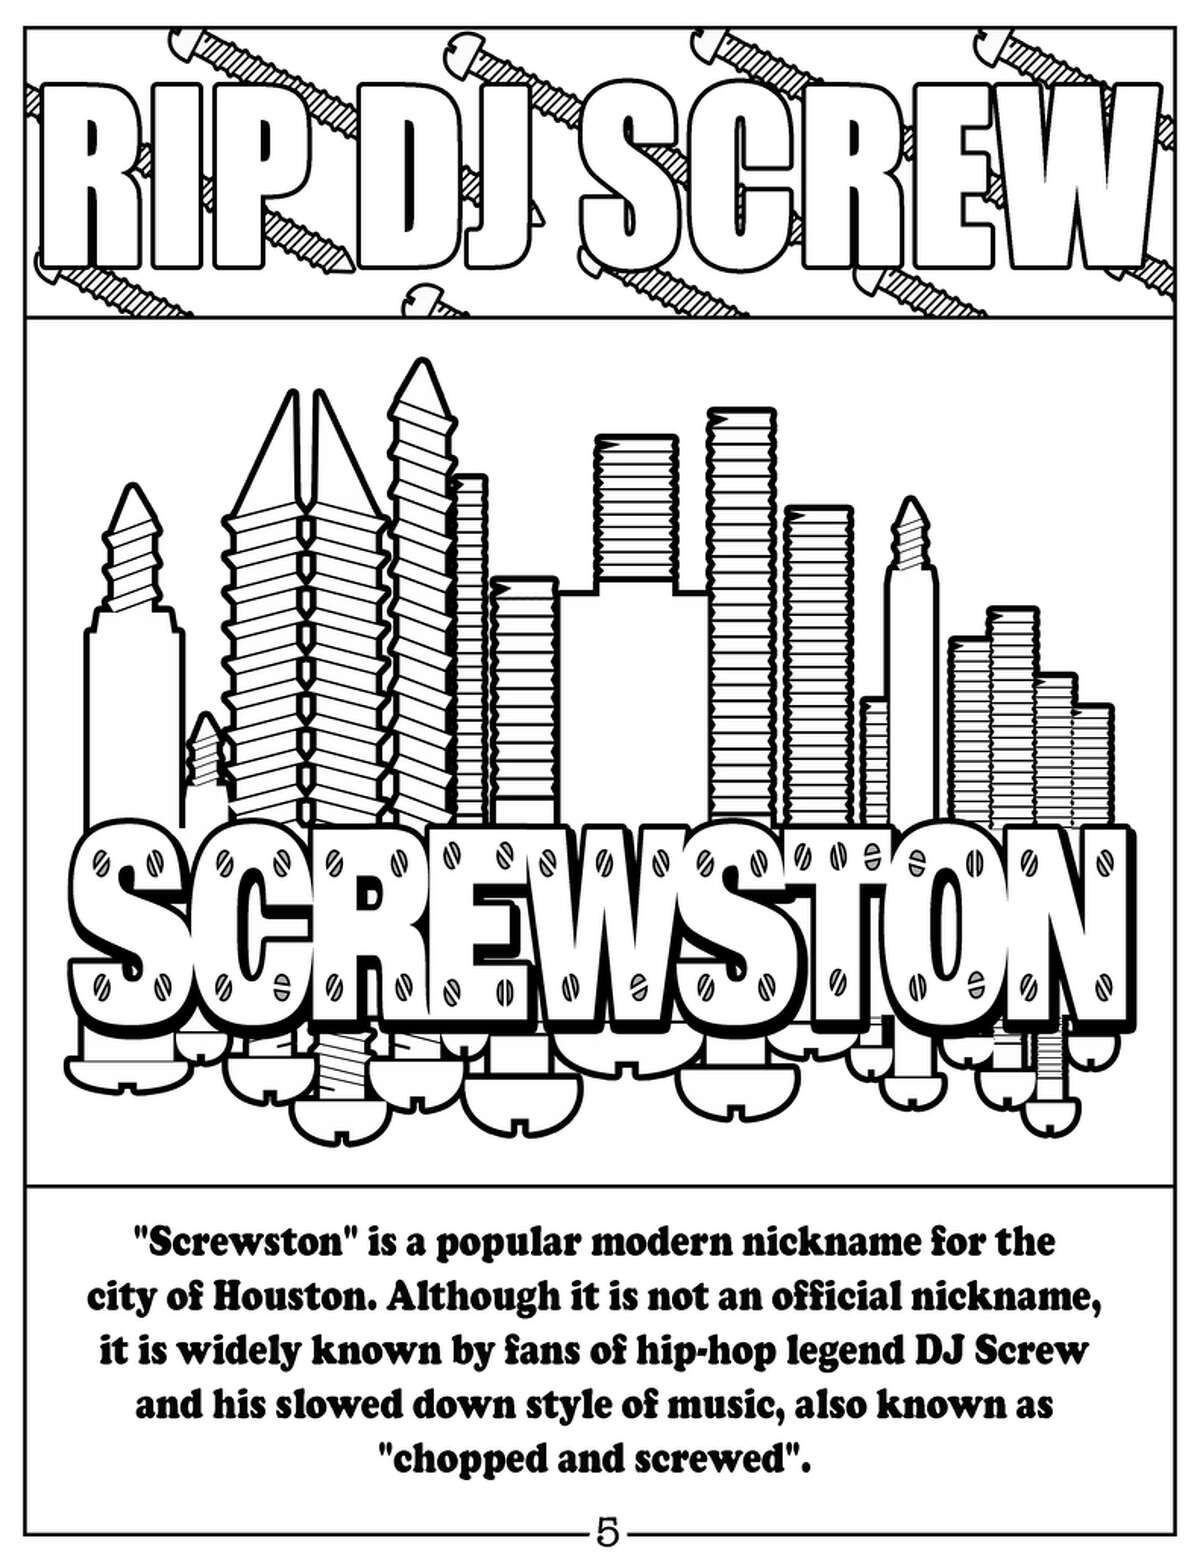 'The H-Town Coloring Book' includes many popular Houston nicknames